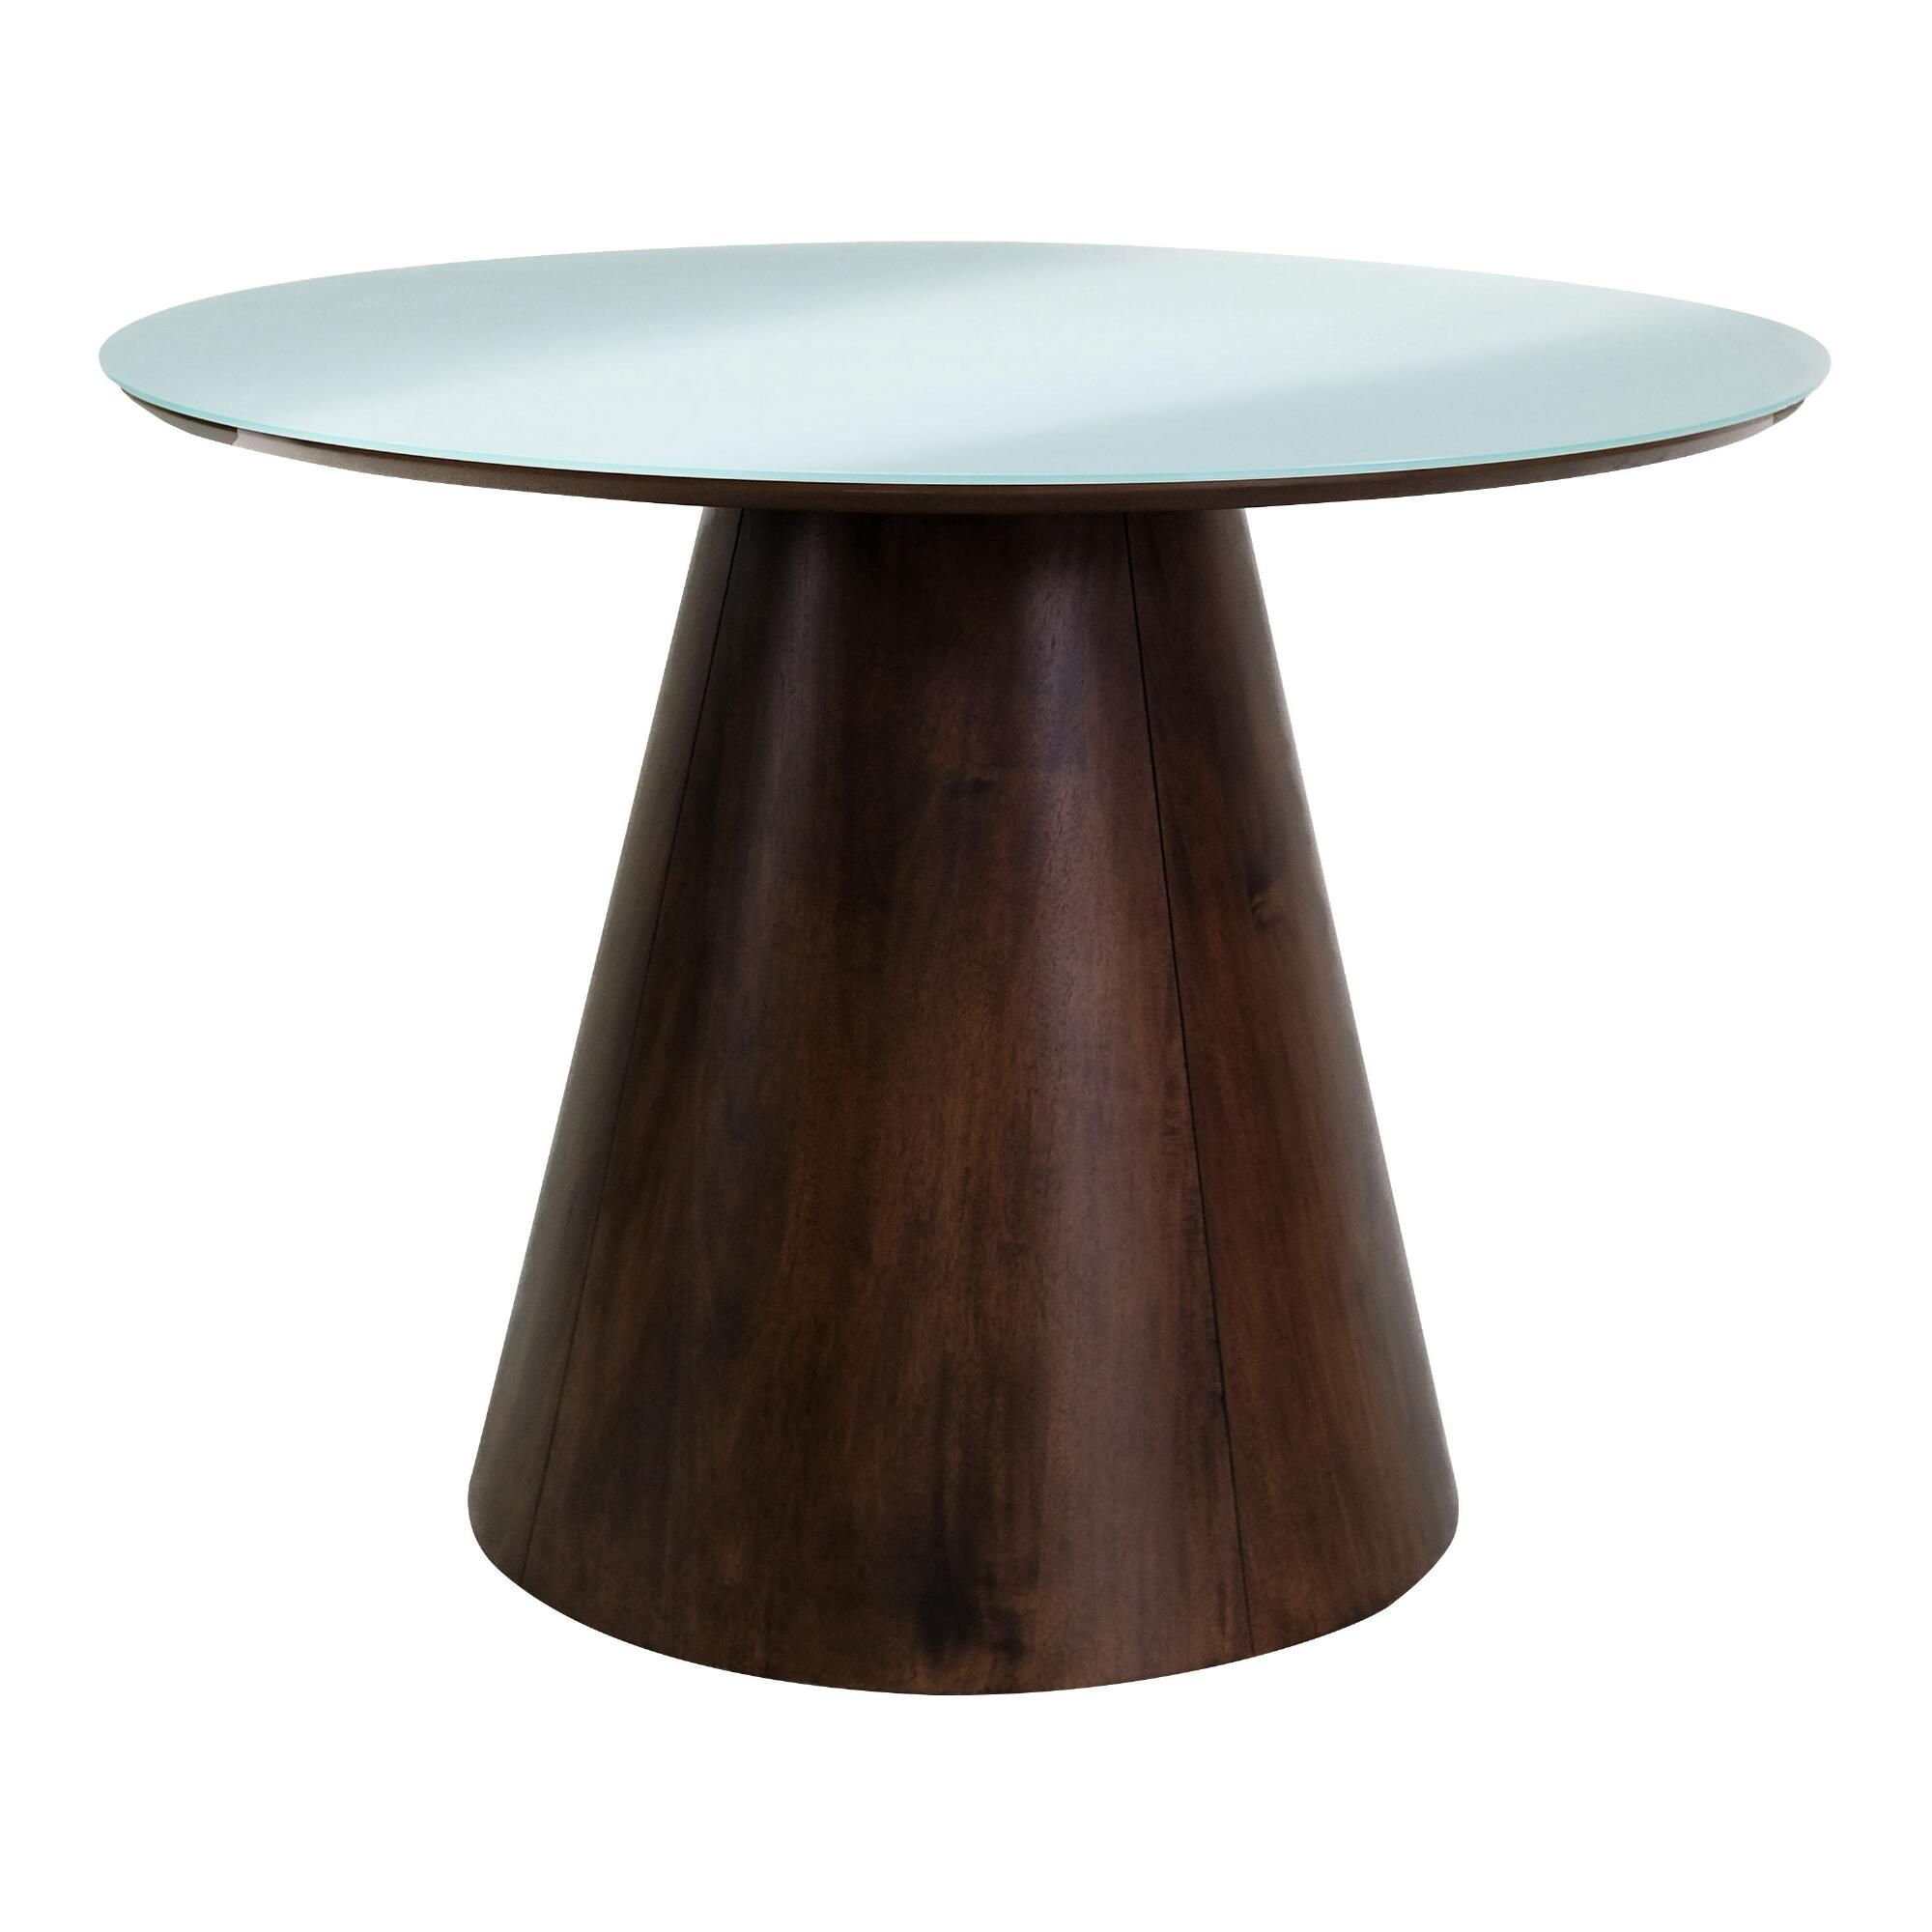 Round Frosted Glass Top Ophelia Dining Table Brown White Natural Wood By World Market In 2021 Dining Table Glass Round Dining Table Modern Round Kitchen Table [ jpg ]